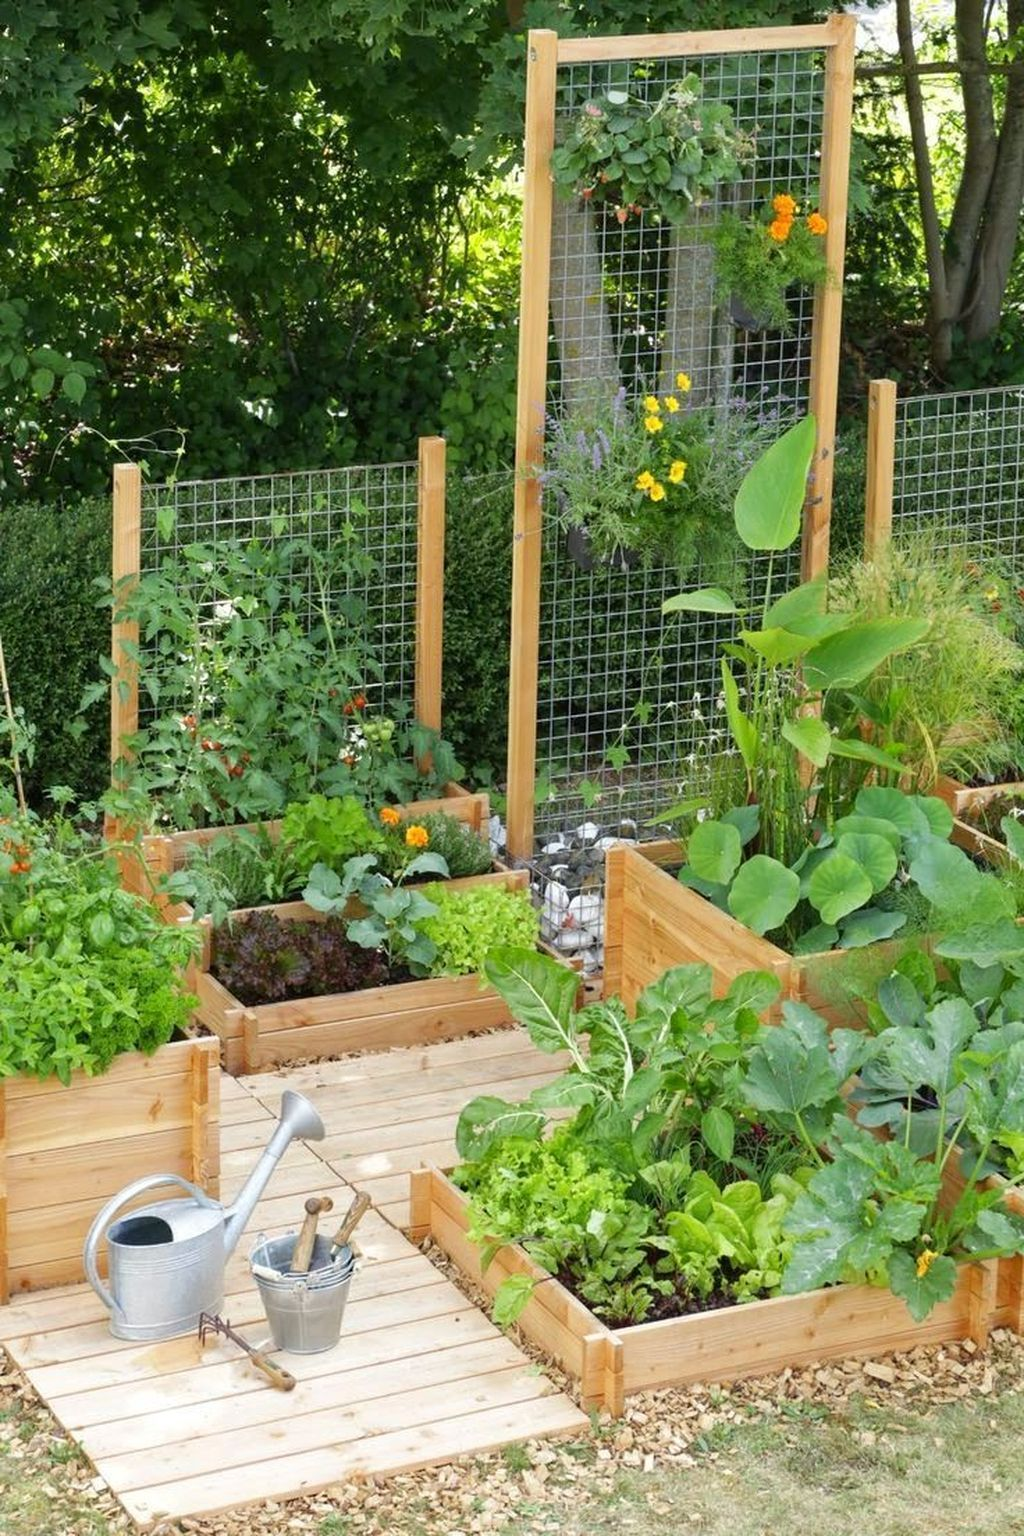 Photo of 30+ Cozy Small Vegetable Garden Ideas On A Budget, #Budget #cozy #Garden #Ideas #Small #Veget…